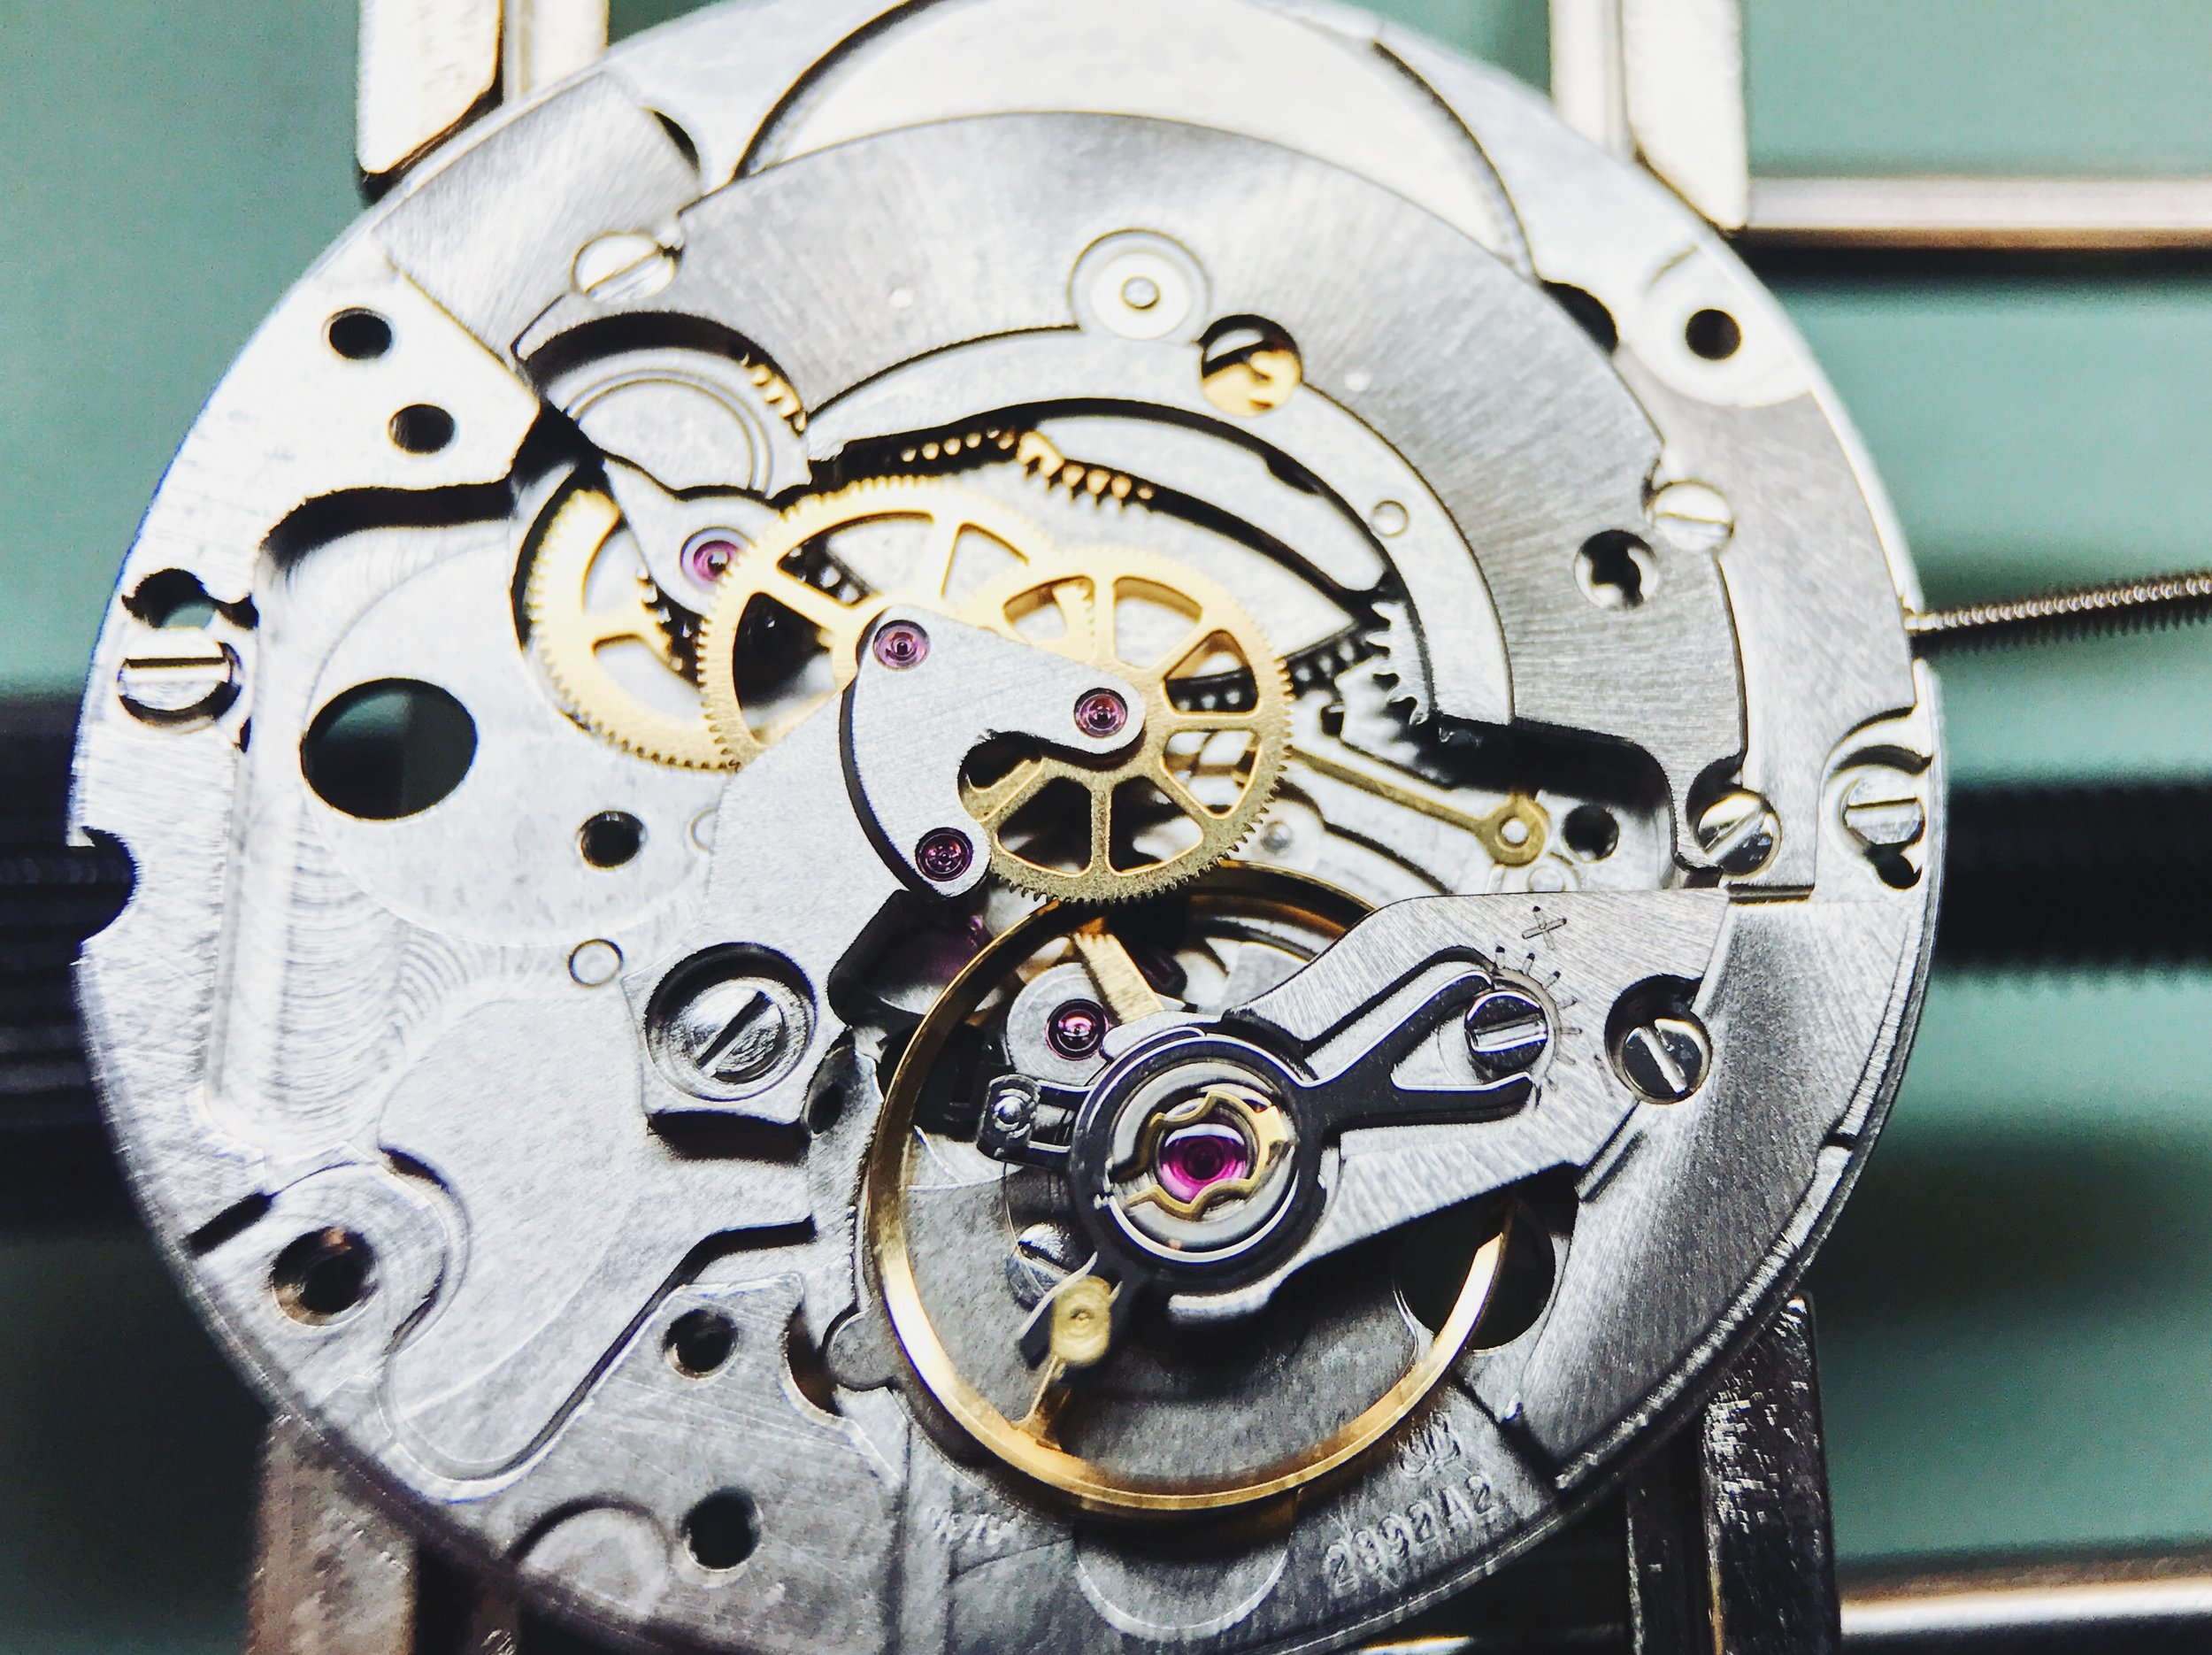 The lever, northeast of the balance wheel, is held in place by a hope and a prayer until the automatic module is installed to provide an axial bearing surface.